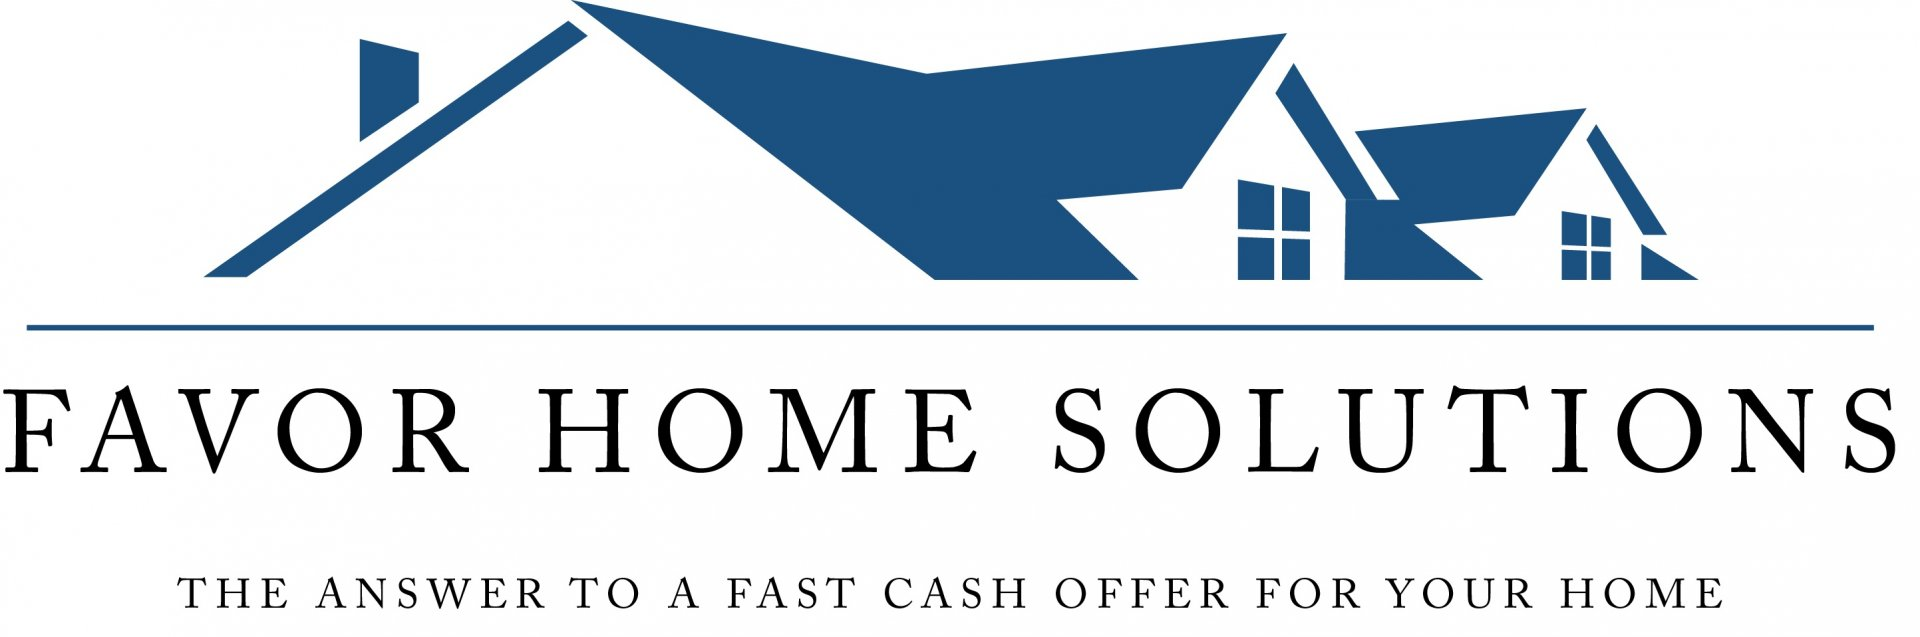 Sell My House Fast For Quick Cash logo